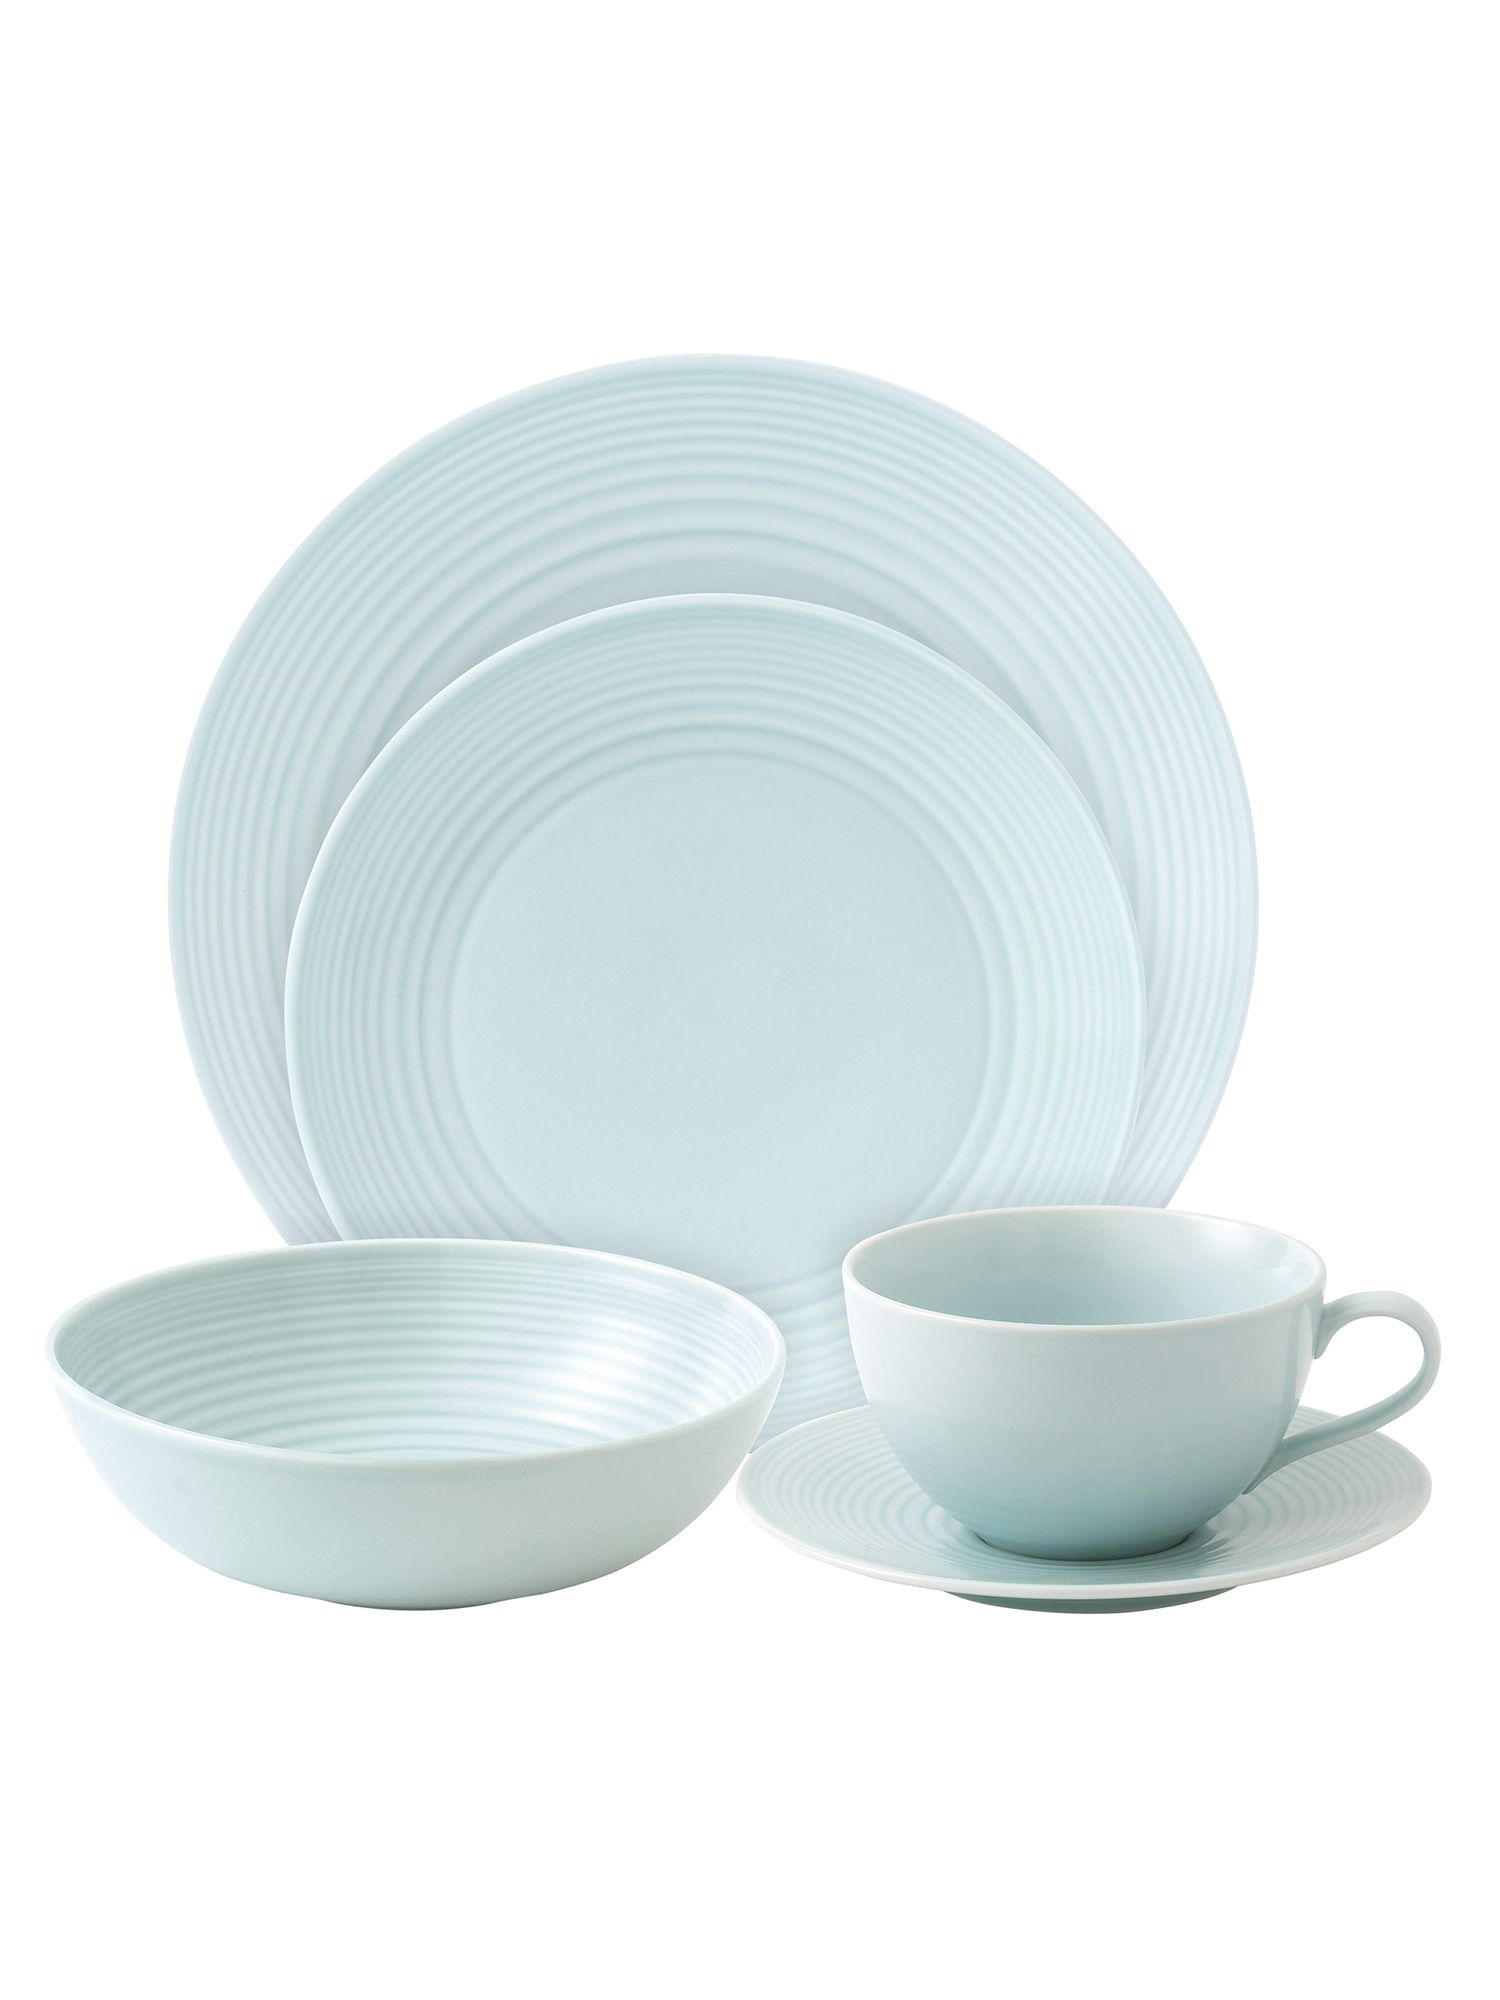 Gordon Ramsay maze blue dinner range